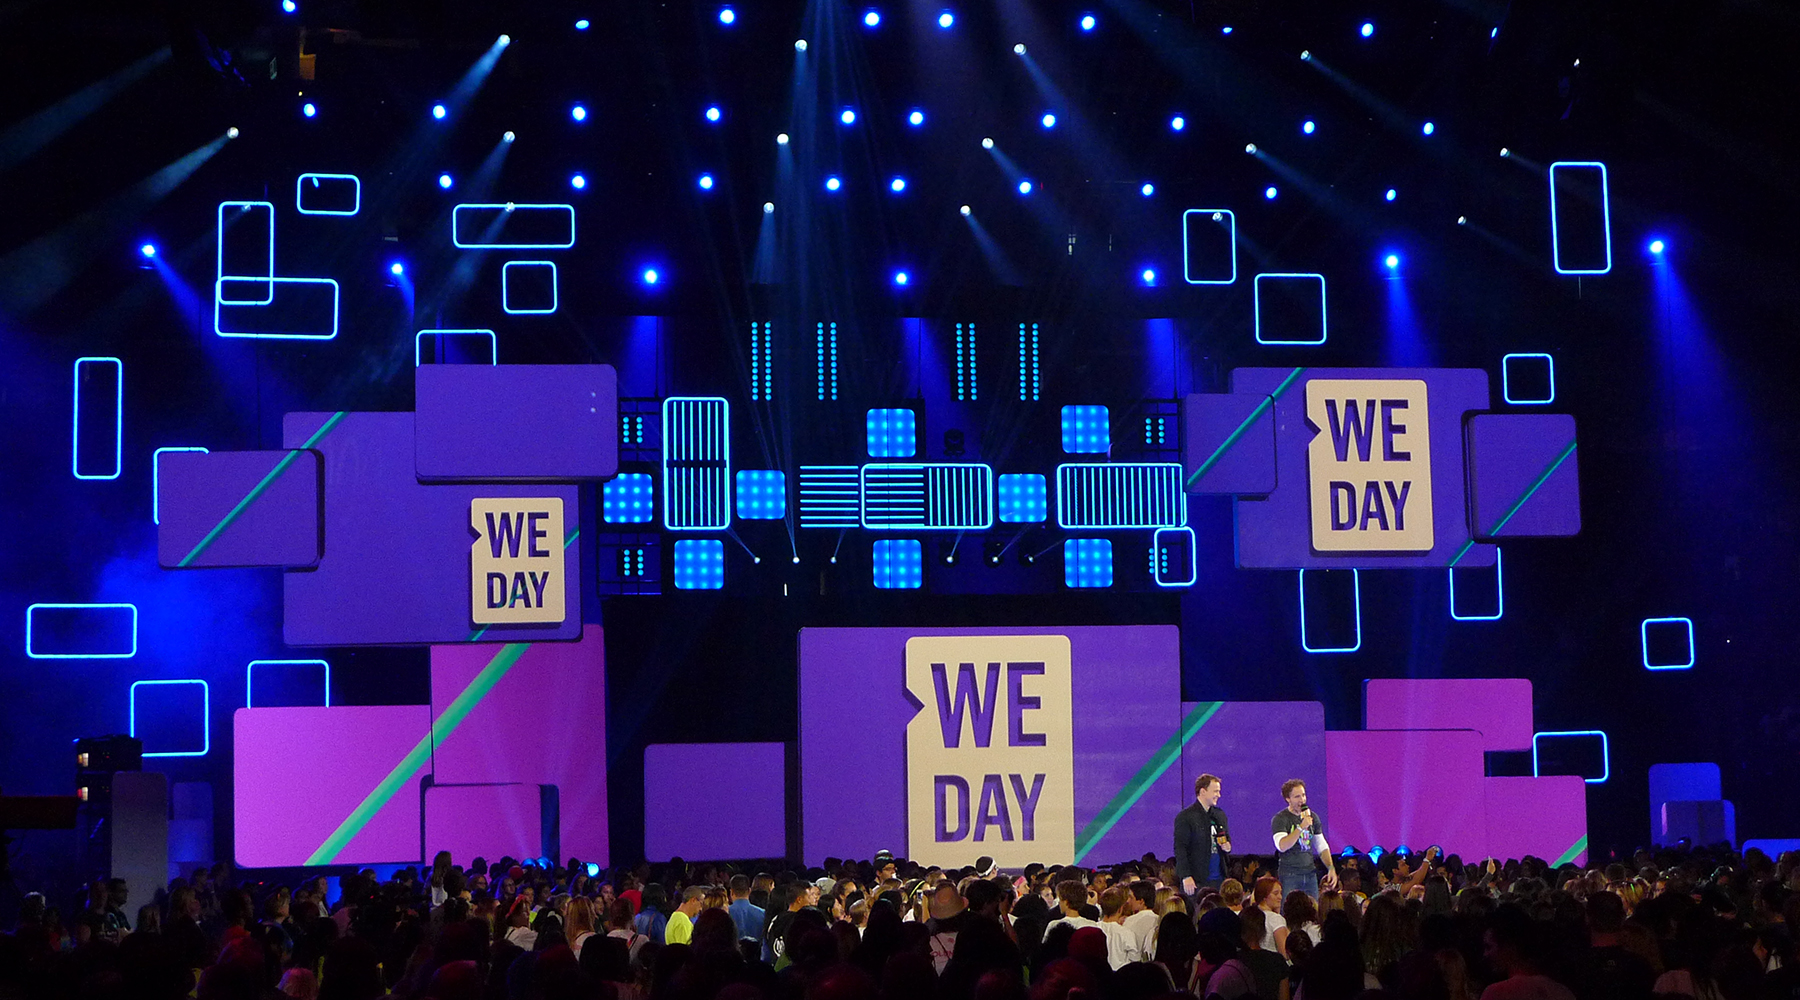 The Countdown To This Year's WE DAY Is On!